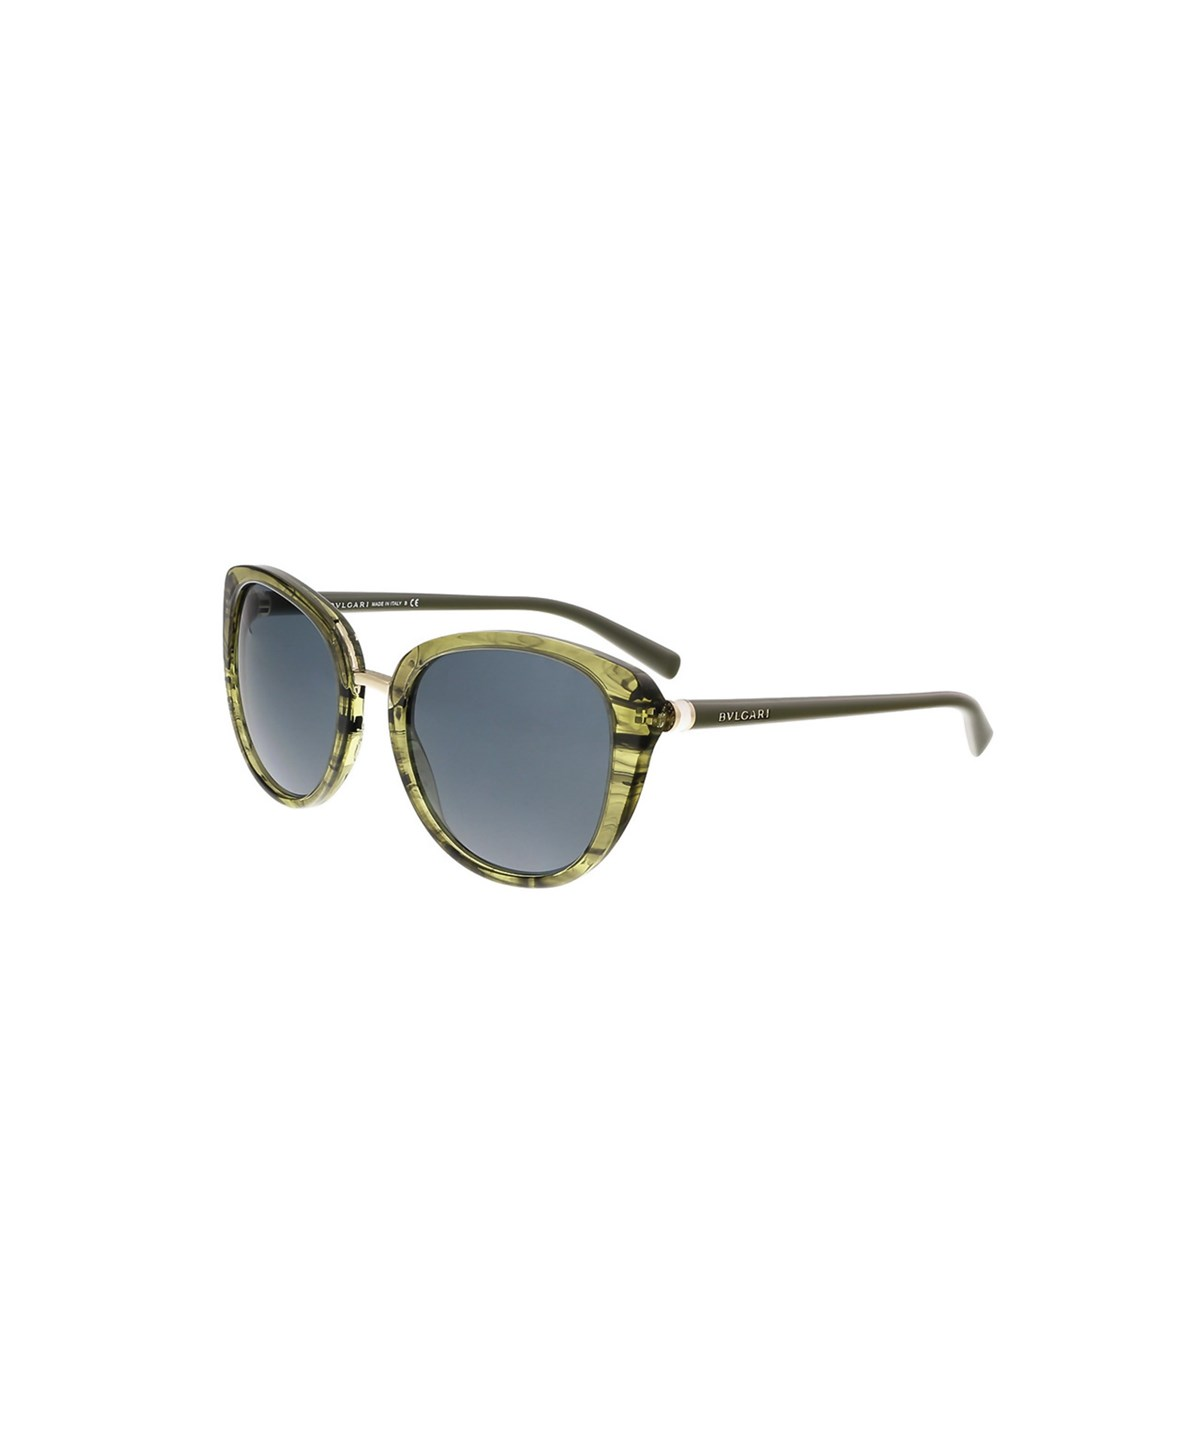 Bulgari Bv8177 5398/87 Green Cat Eye Sunglasses